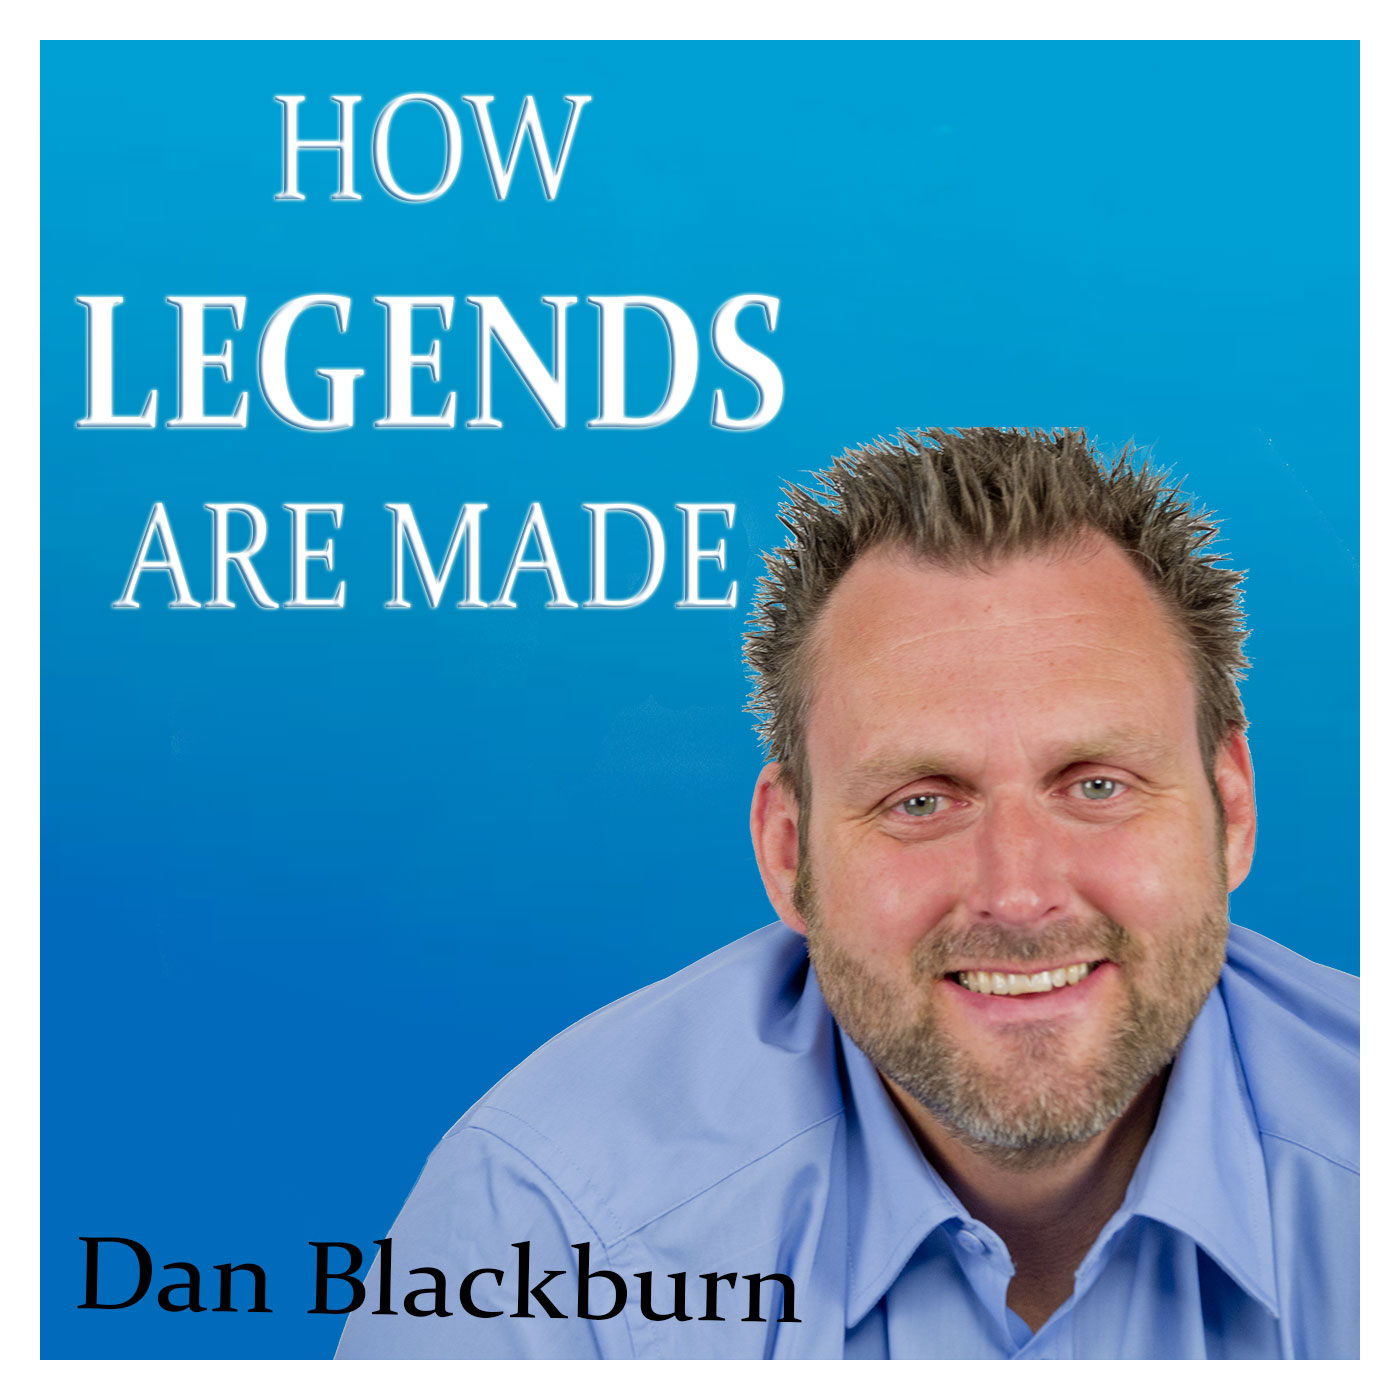 How Legends are Made - daily insight and tips into how you can live a legendary life